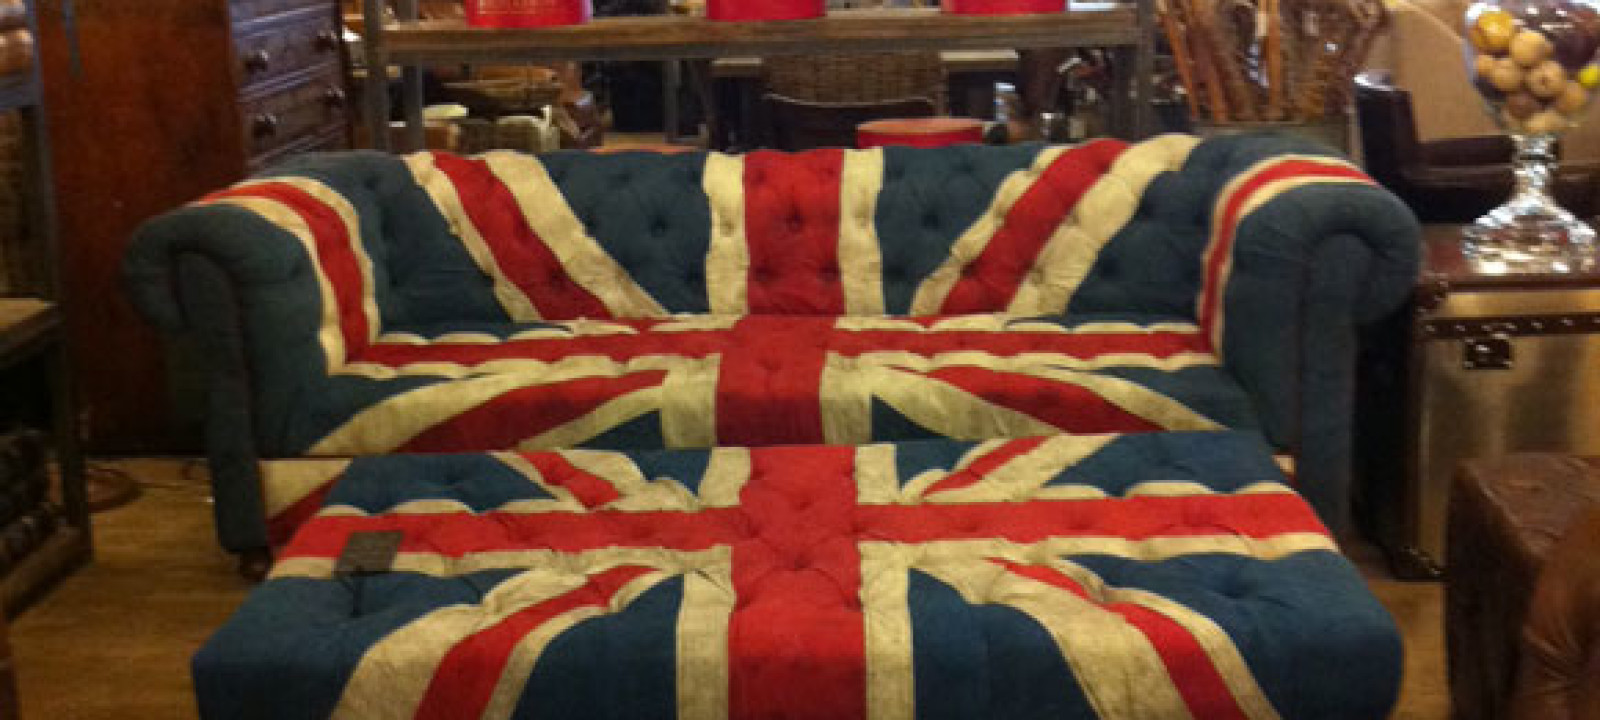 unionflagcouch